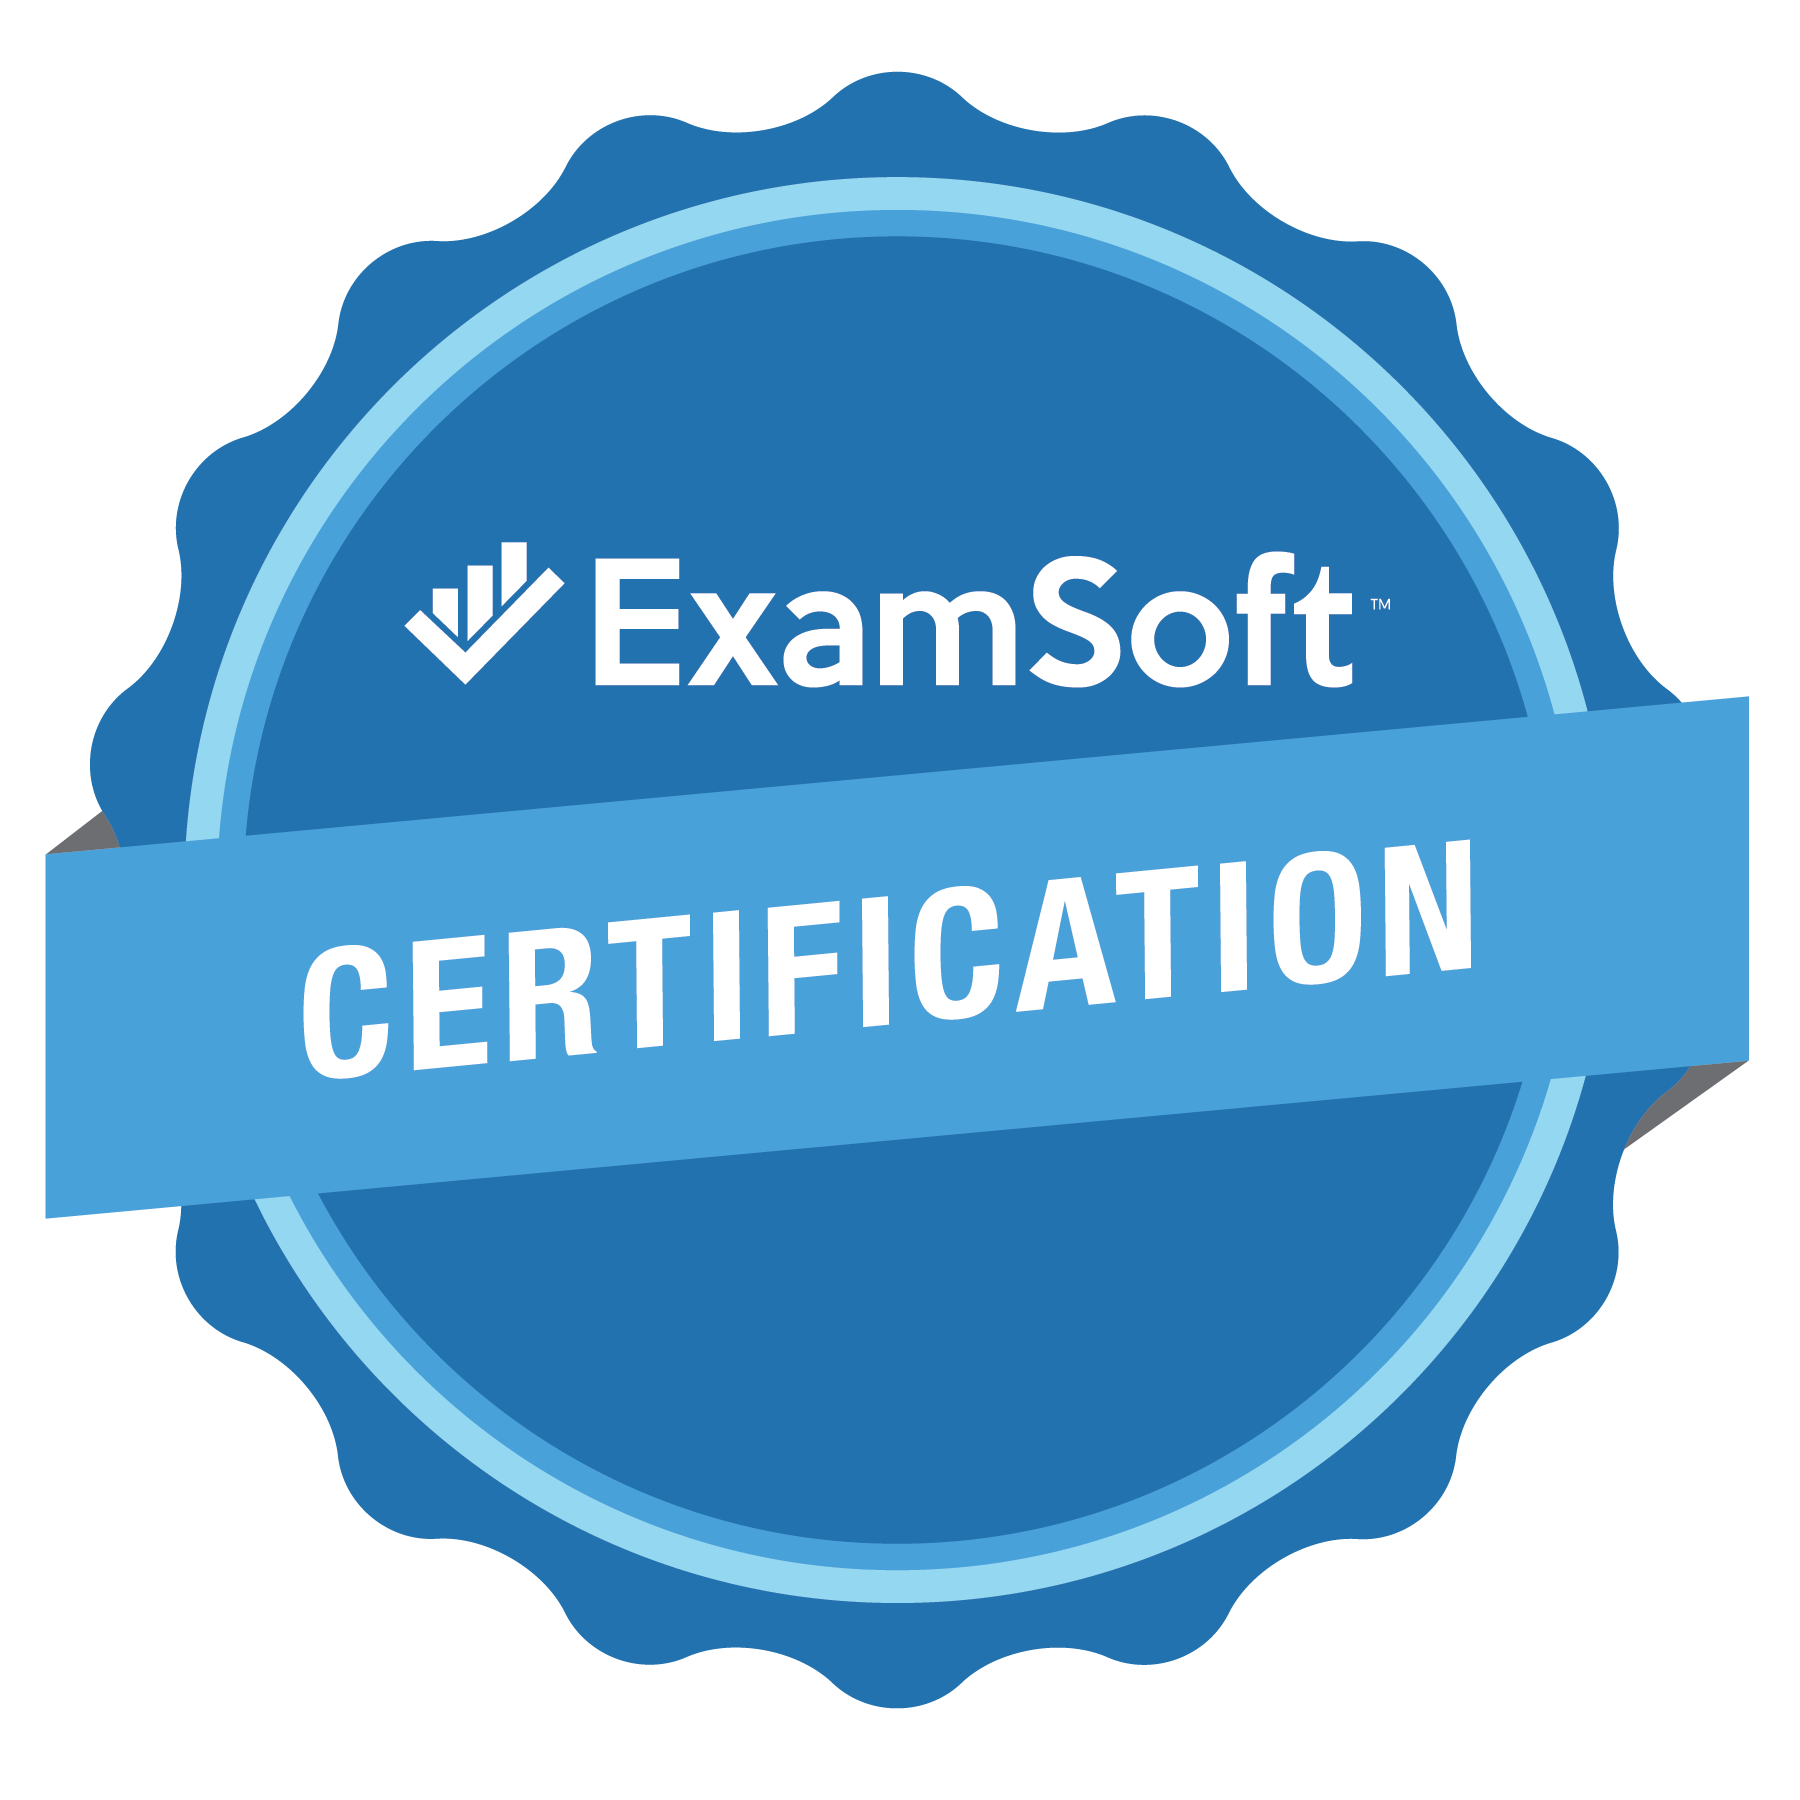 The ExamSoft Certification Program Badge